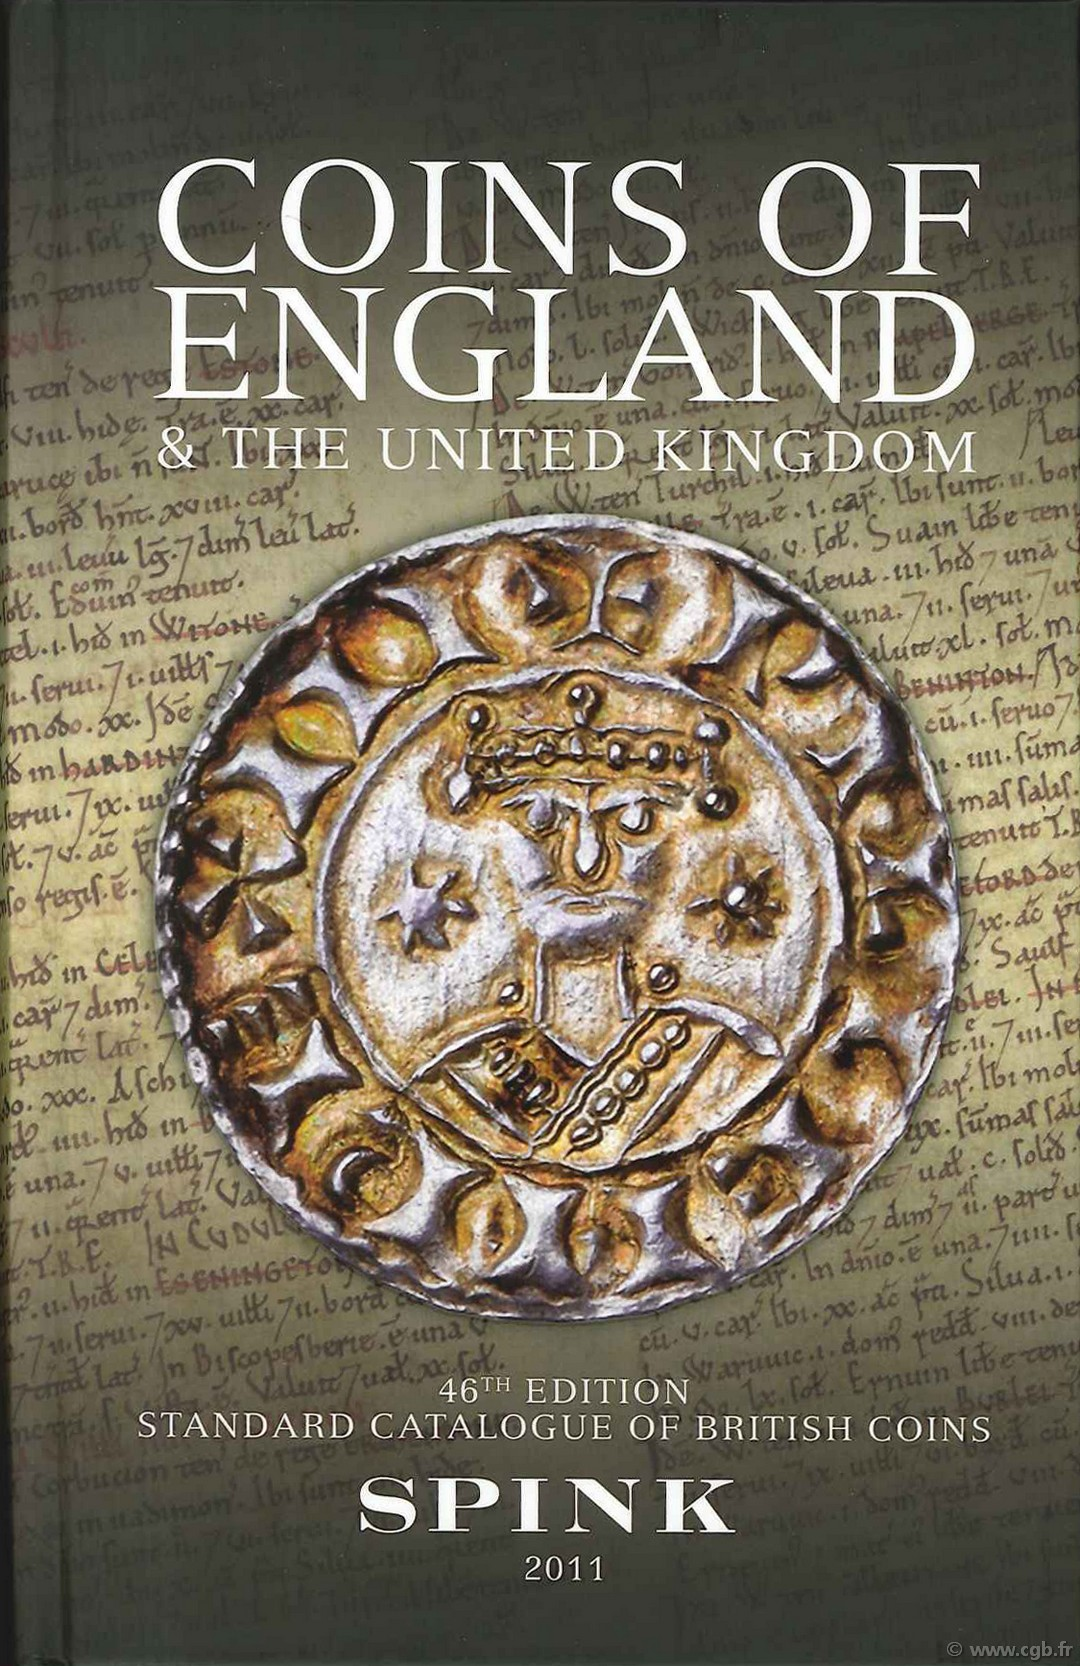 Coins of England and the United Kingdom, 46th edition - 2011 sous la direction de Philip Skingley